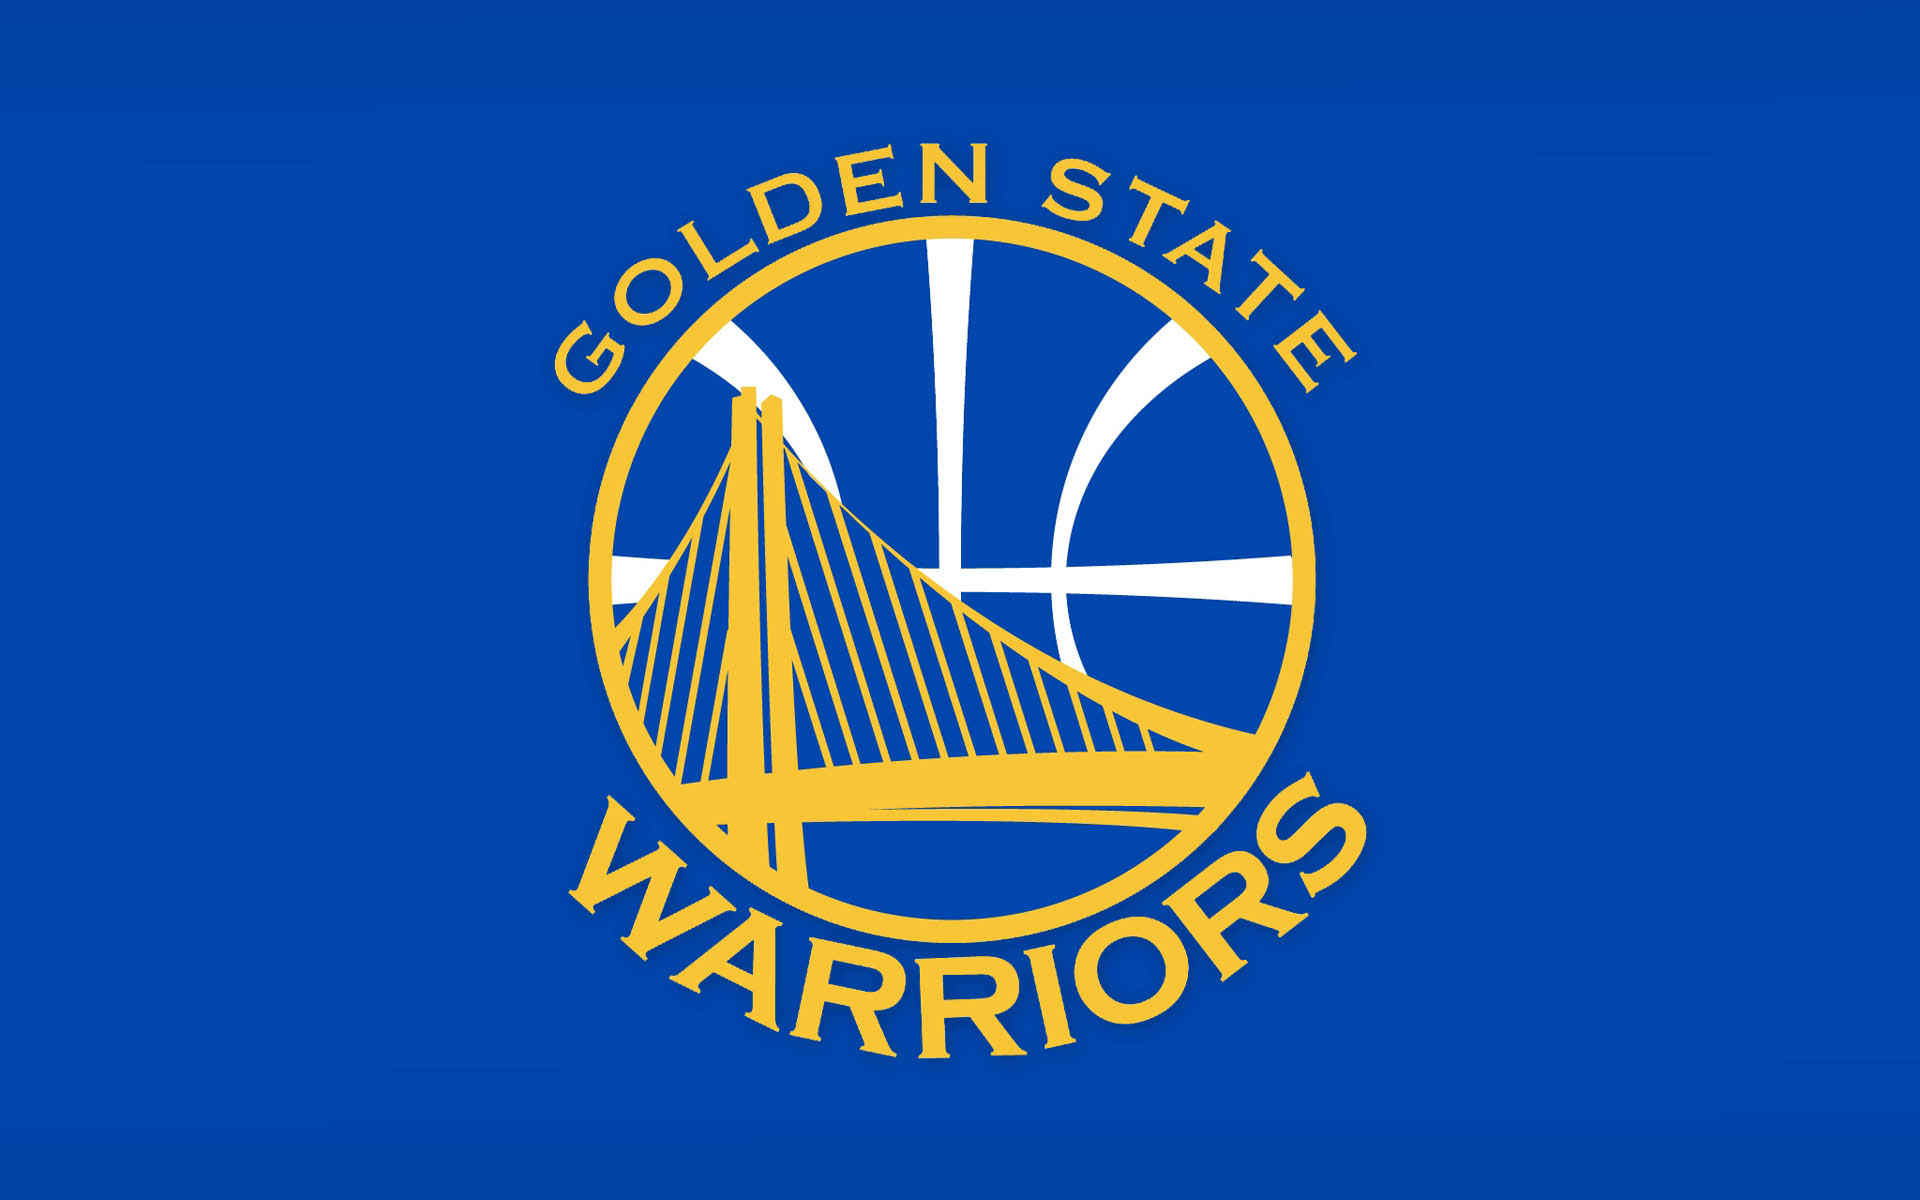 golden-state-warriors-wallpaper34.jpg